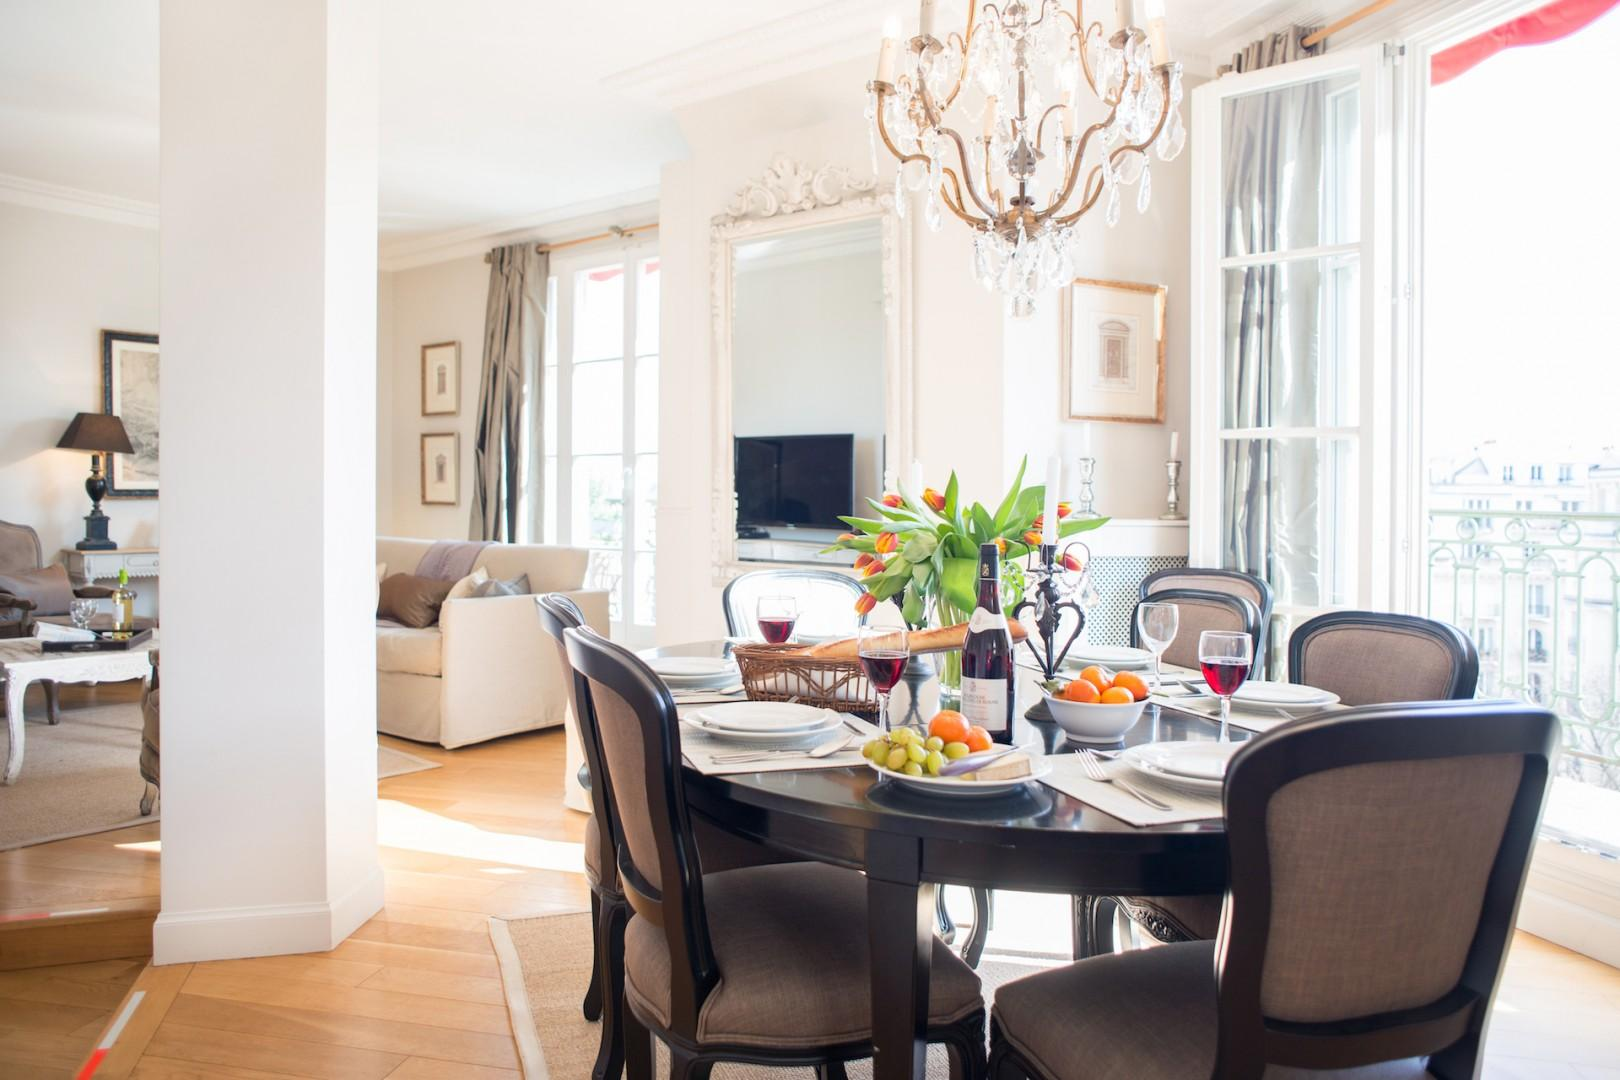 The dining table near the French doors seats up to six guests.